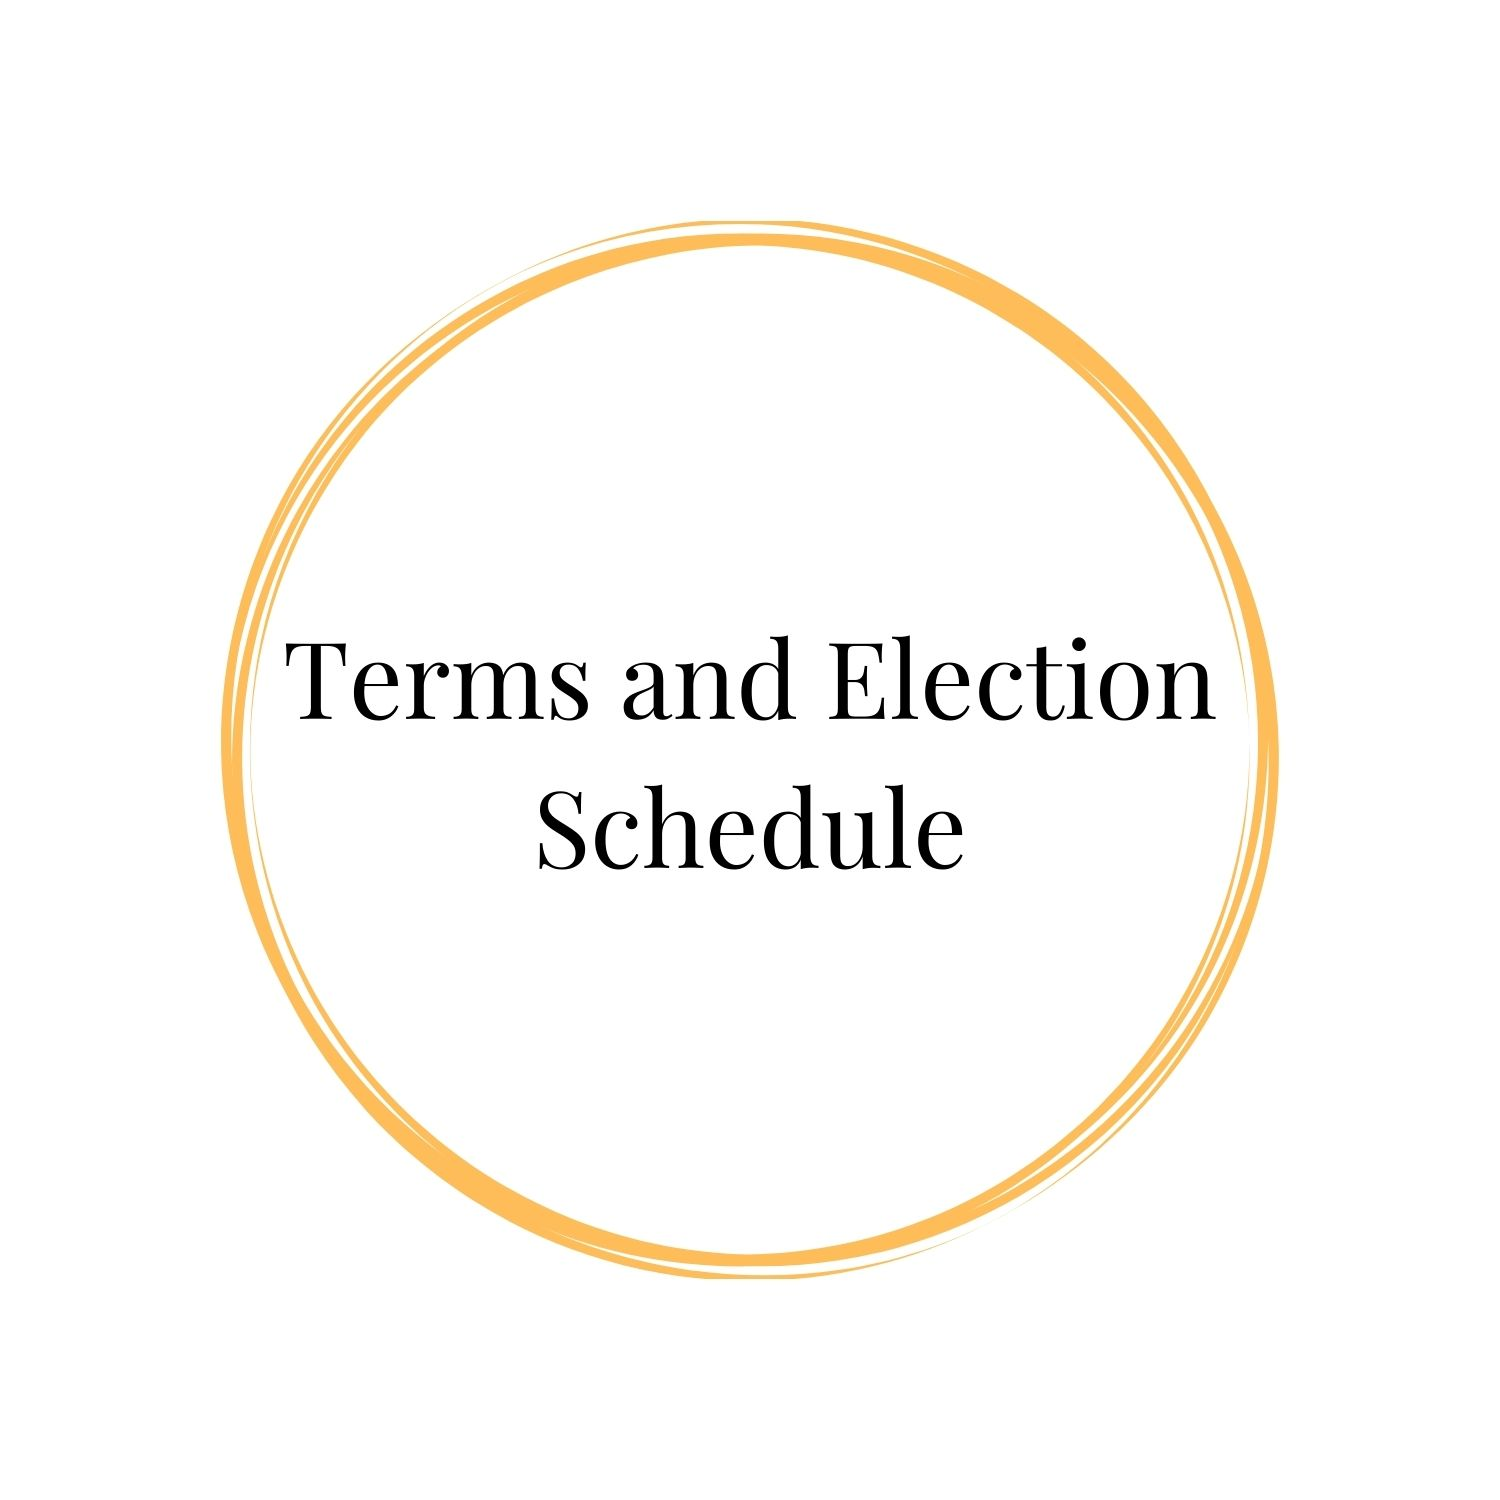 Terms and Election Schedule Photo